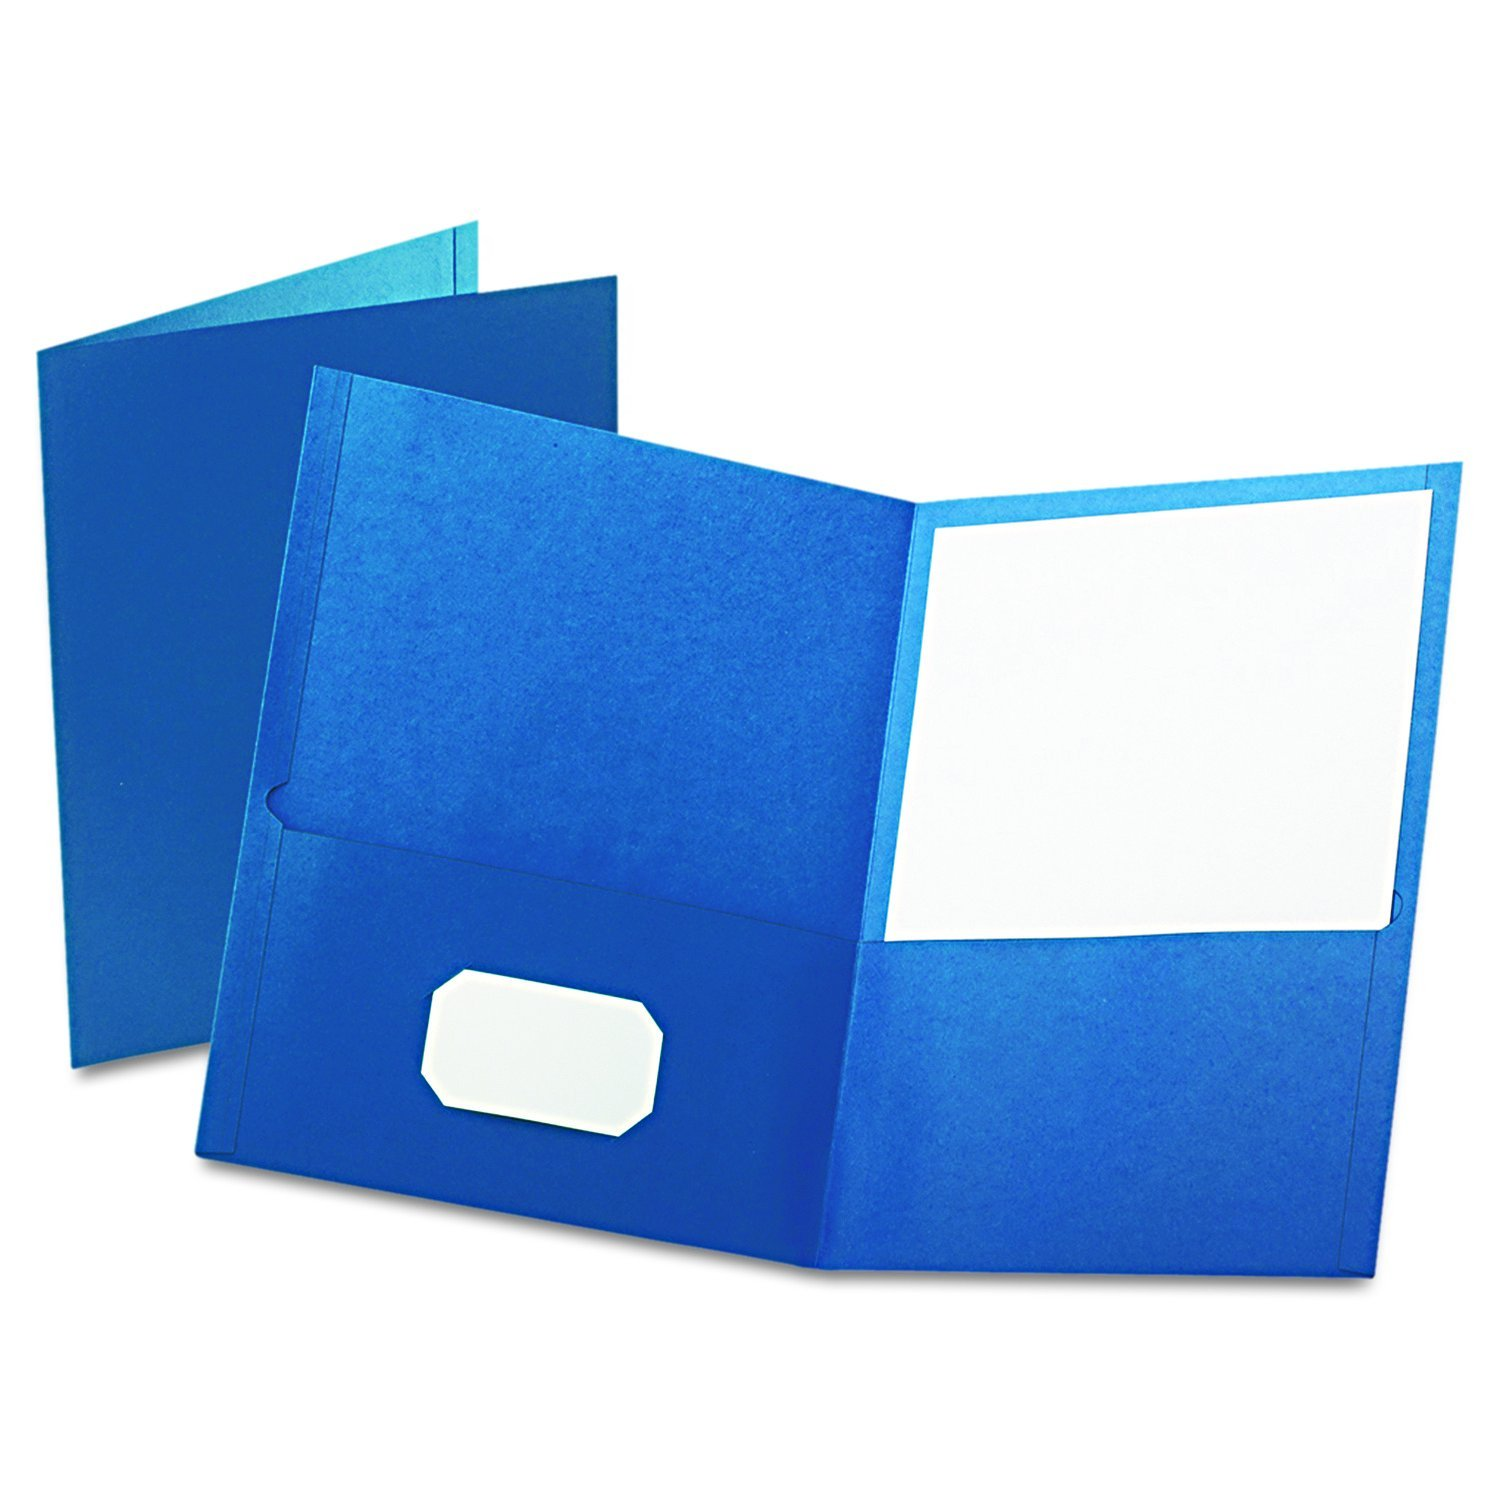 Twin Pocket Folders, Letter Size, Blue, 25 per Box (57502), Twin pockets hold 50 sheets each By Oxford